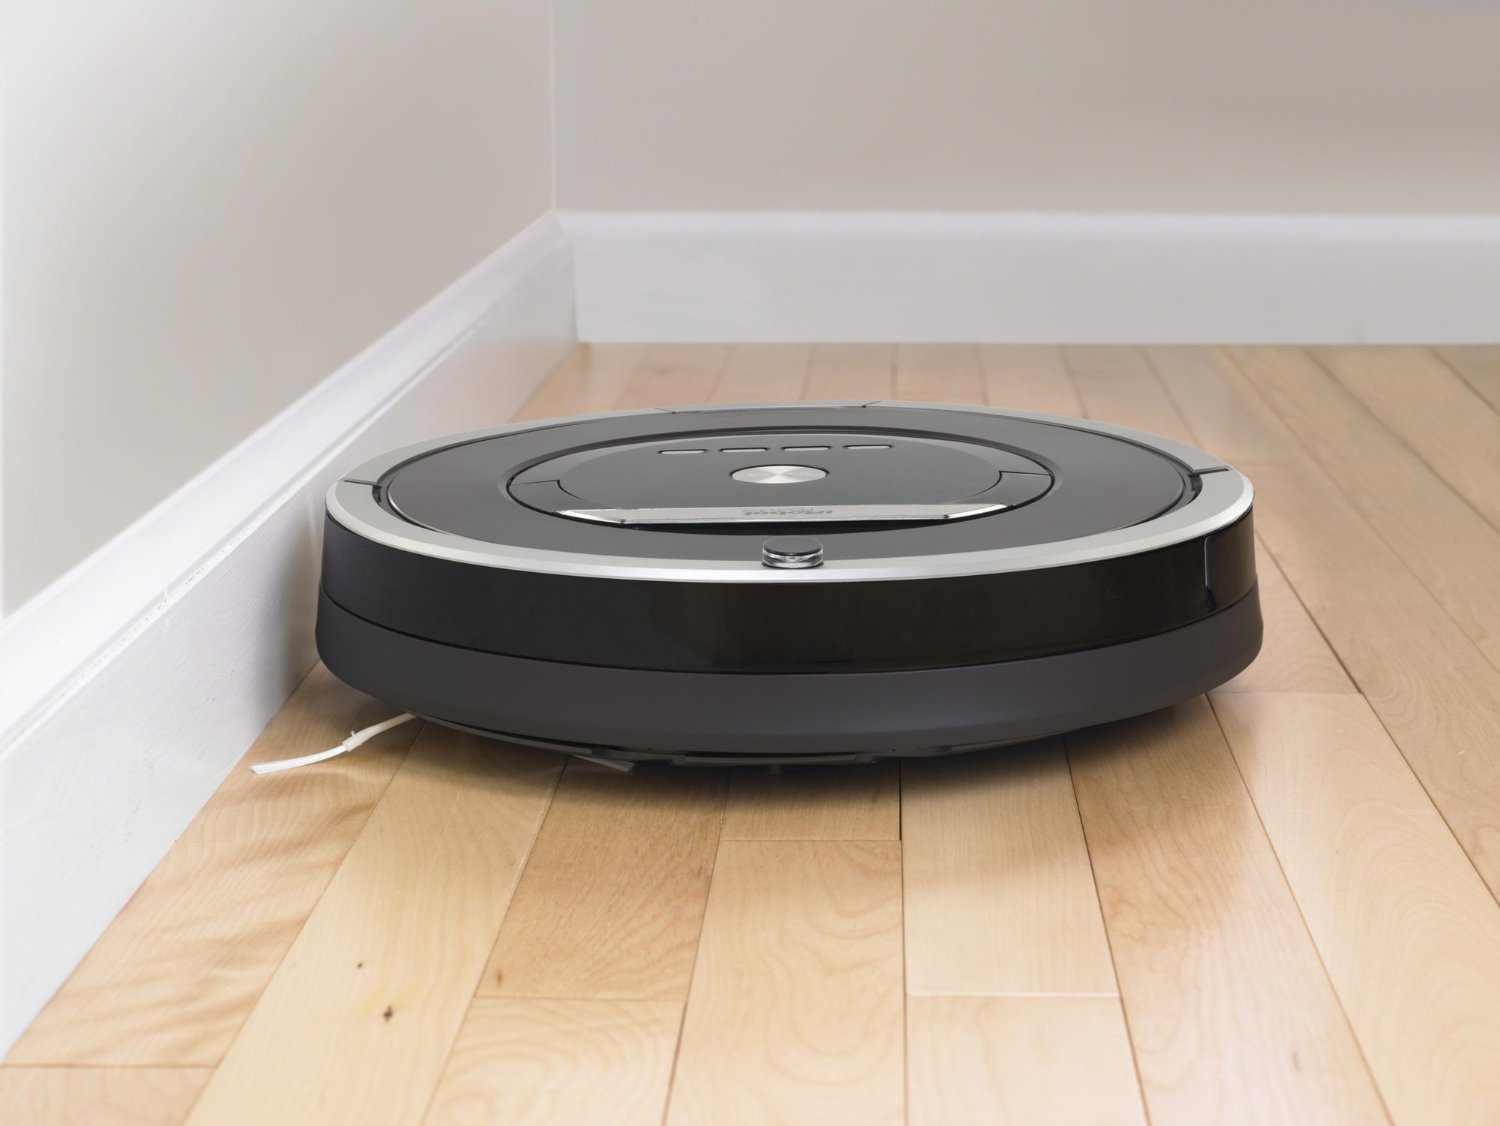 The iRobot Roomba